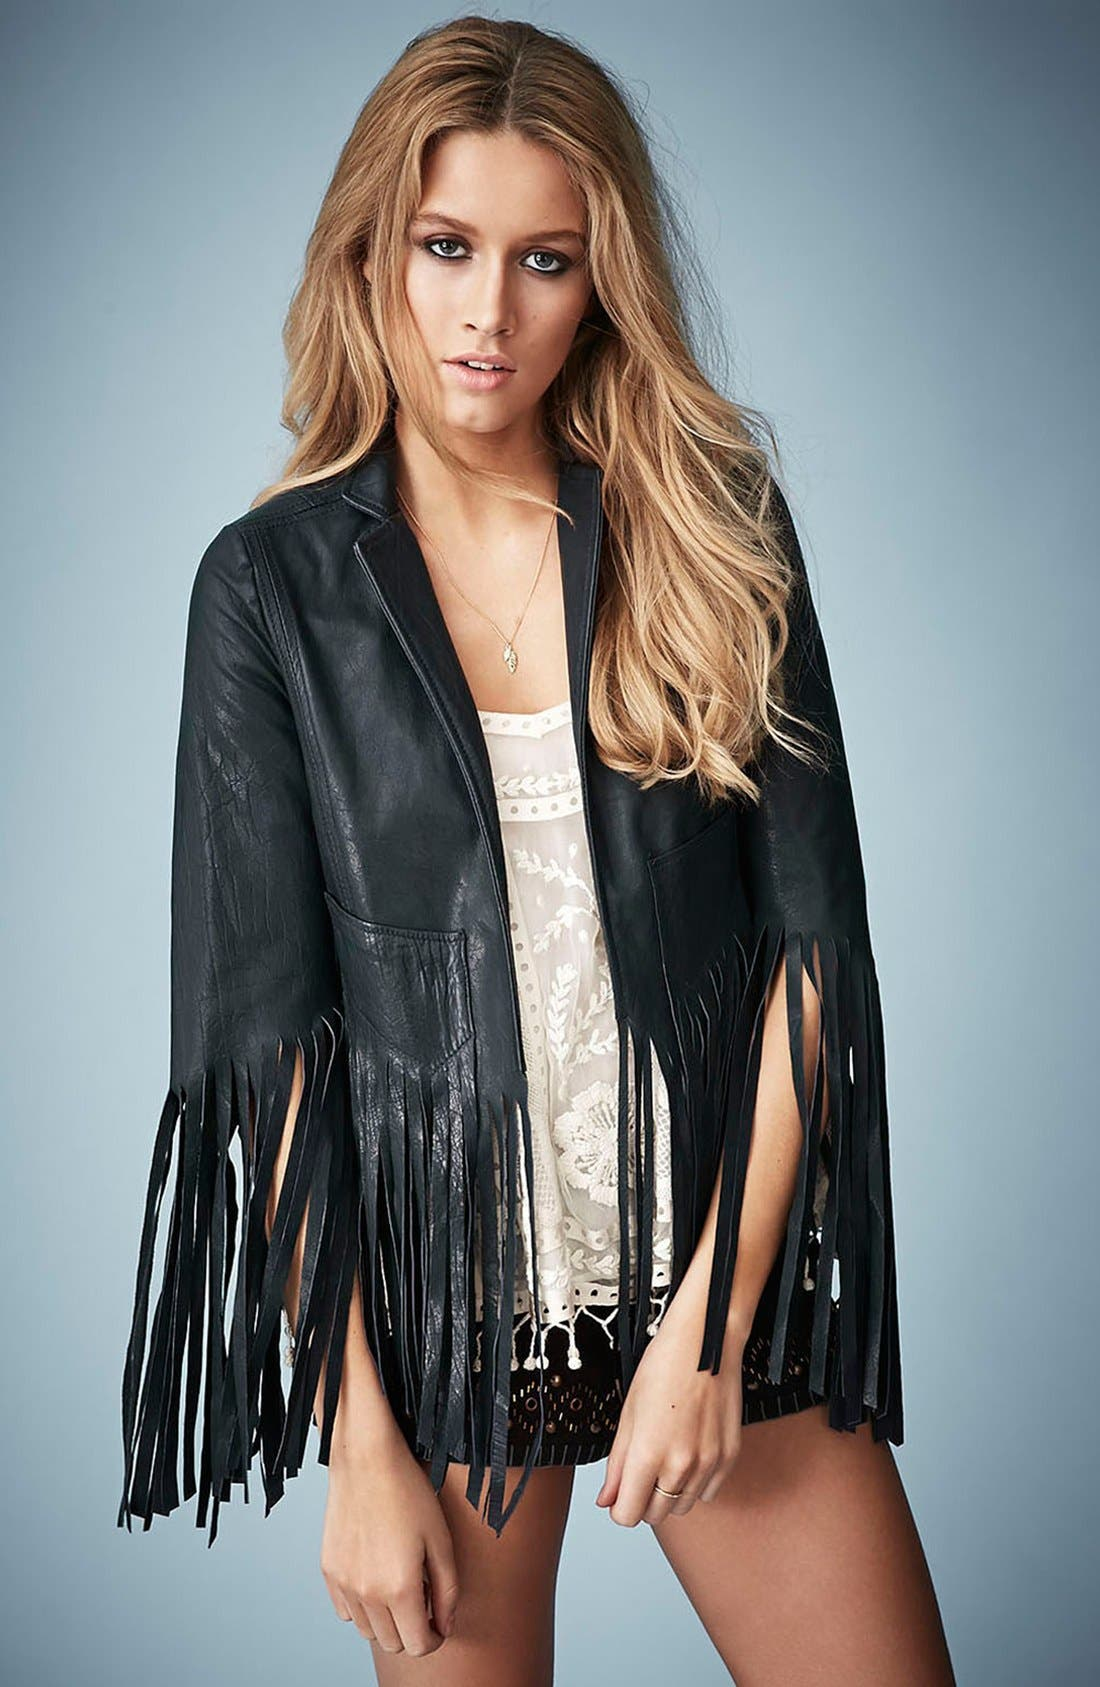 Main Image - Kate Moss for Topshop Fringed Leather Jacket